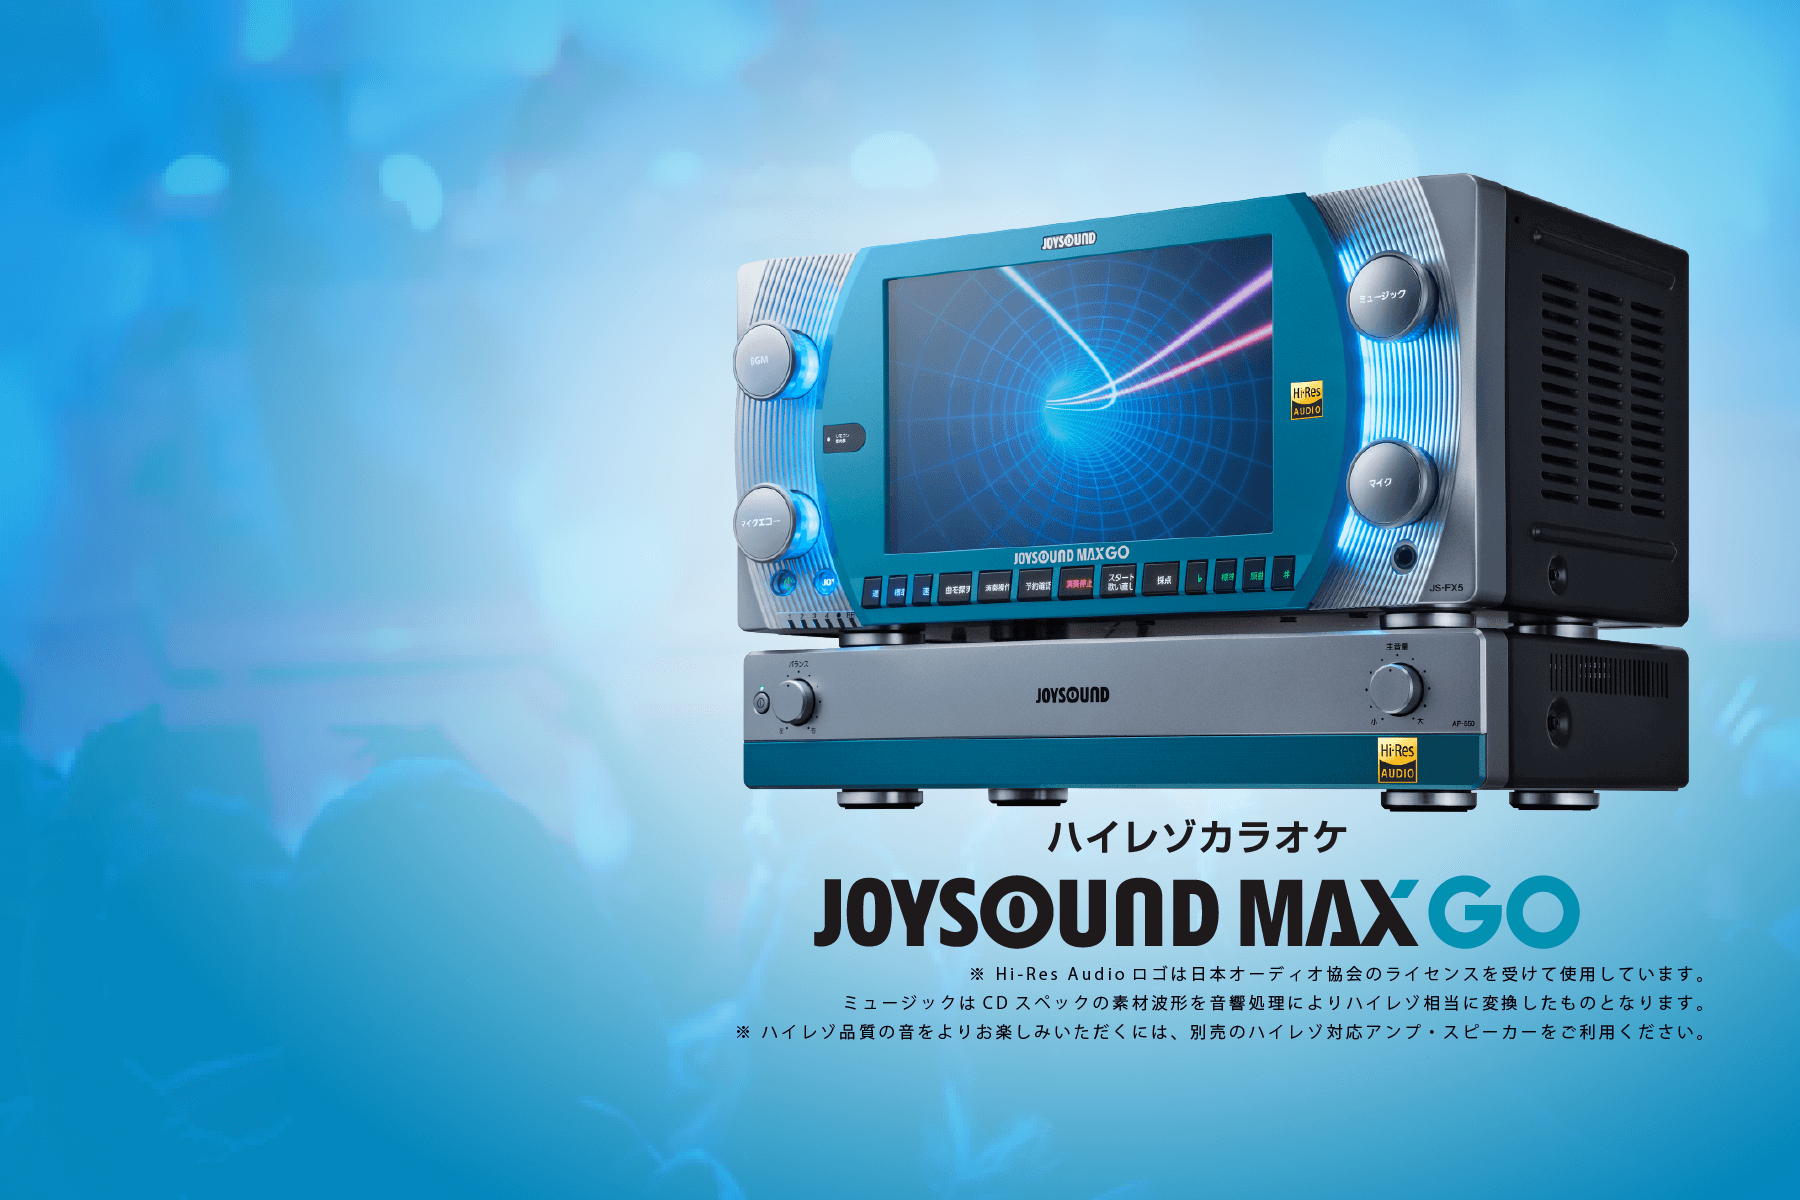 JOYSOUND MAX GO